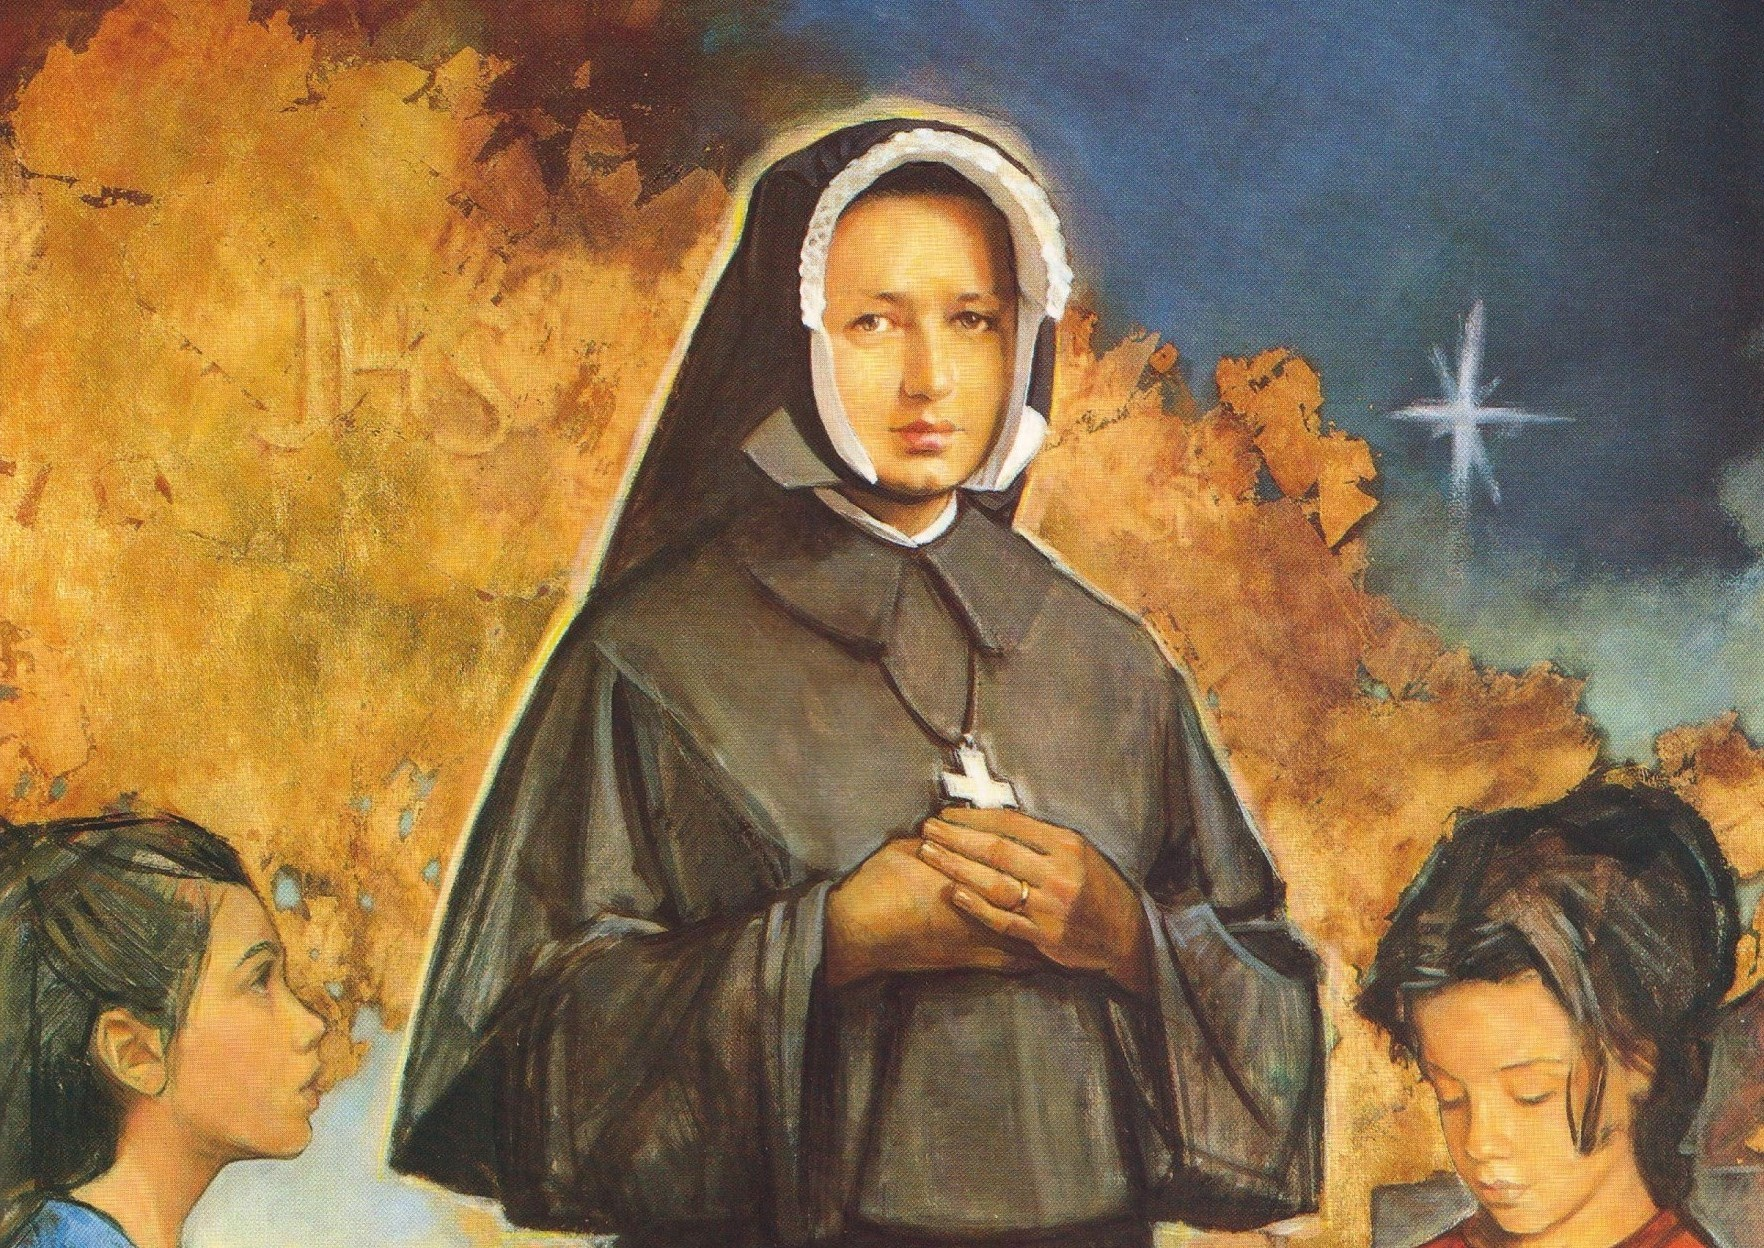 Today Dina Bélanger's feast day!